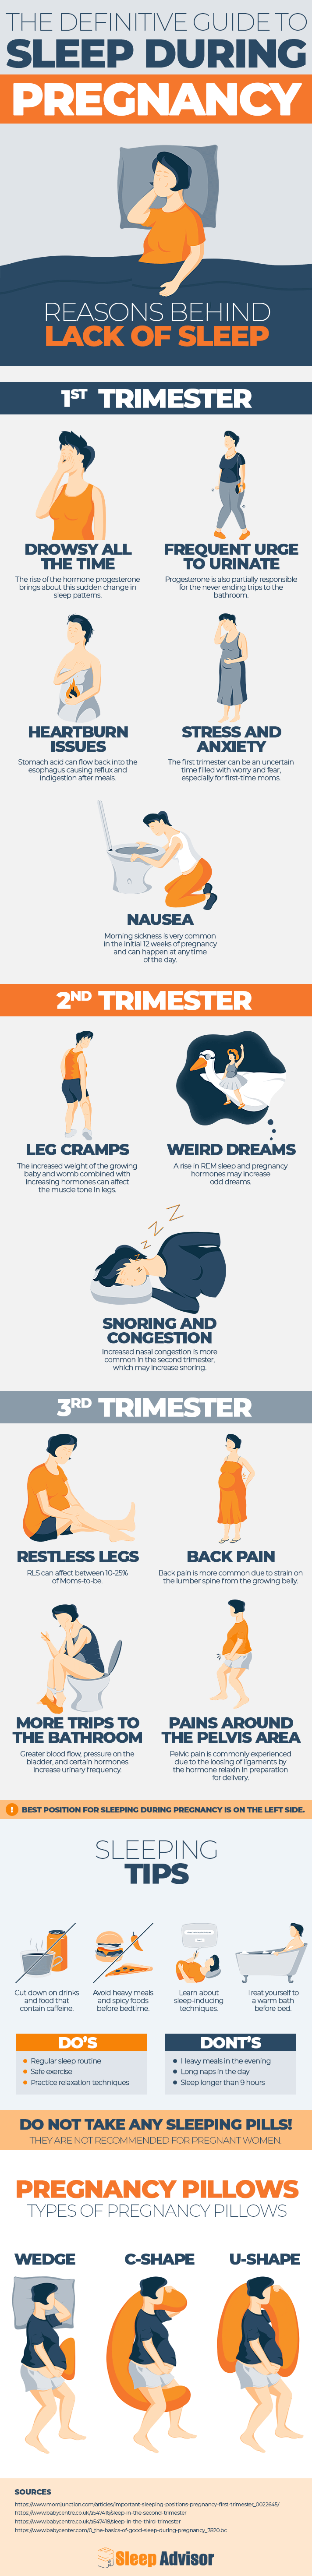 Infographic Guide To Sleep During Pregnancy